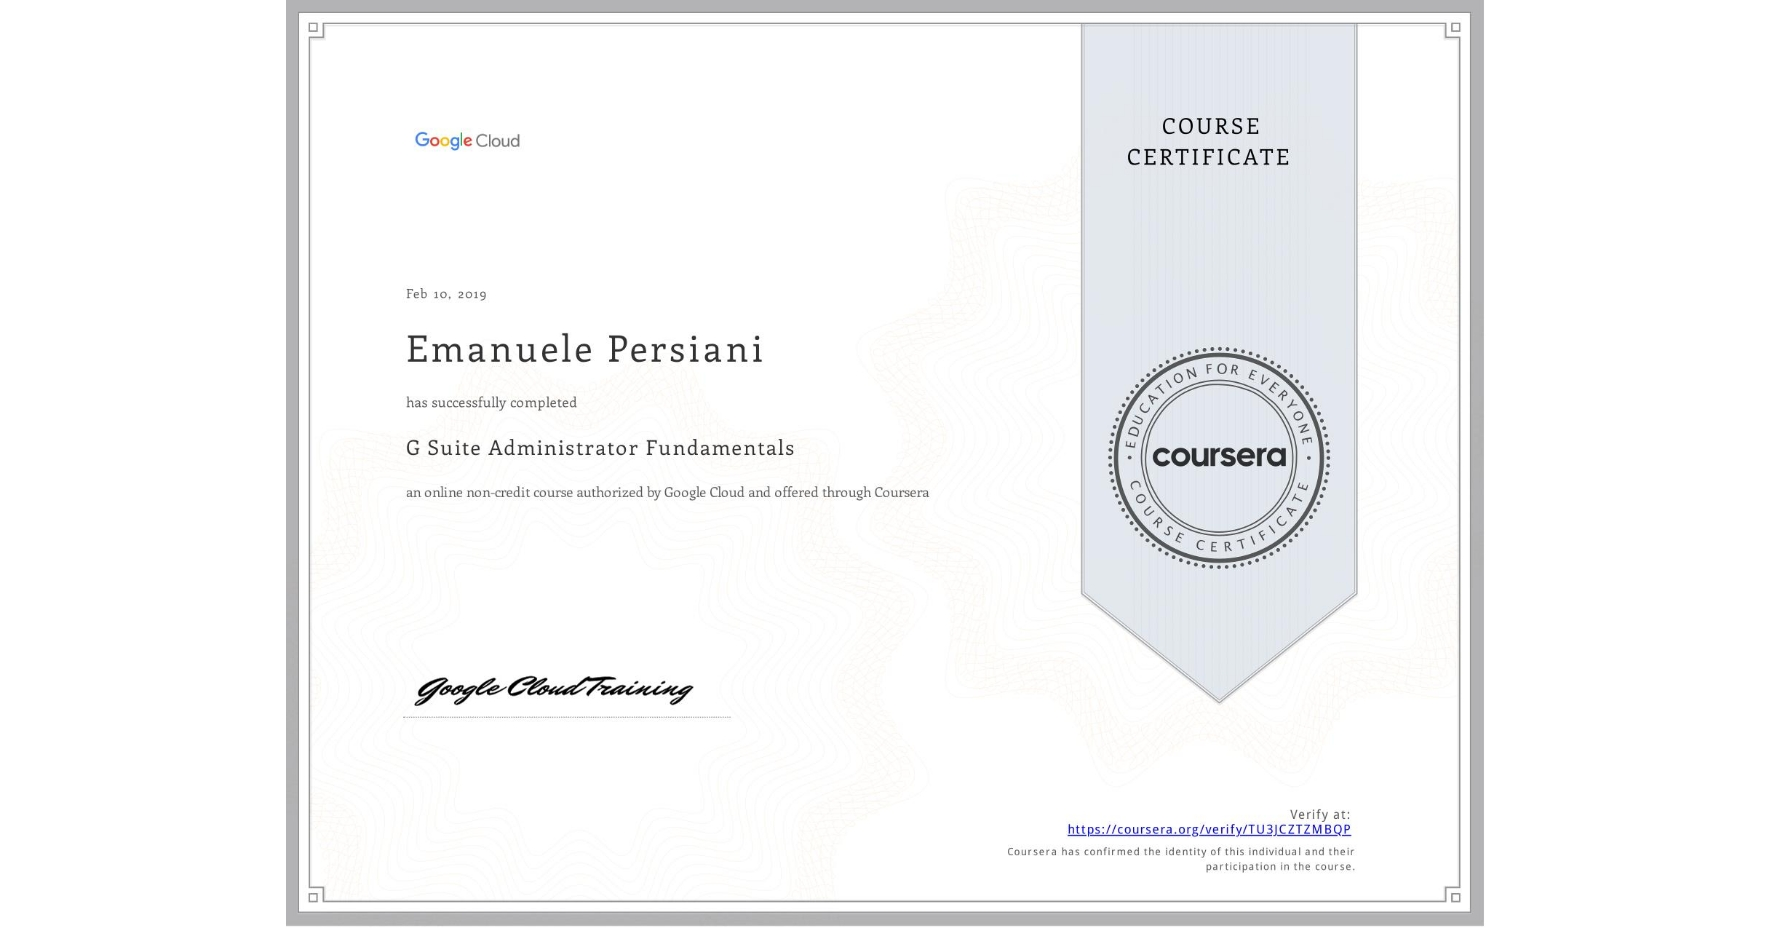 View certificate for Emanuele Persiani, G Suite Administrator Fundamentals, an online non-credit course authorized by Google Cloud and offered through Coursera